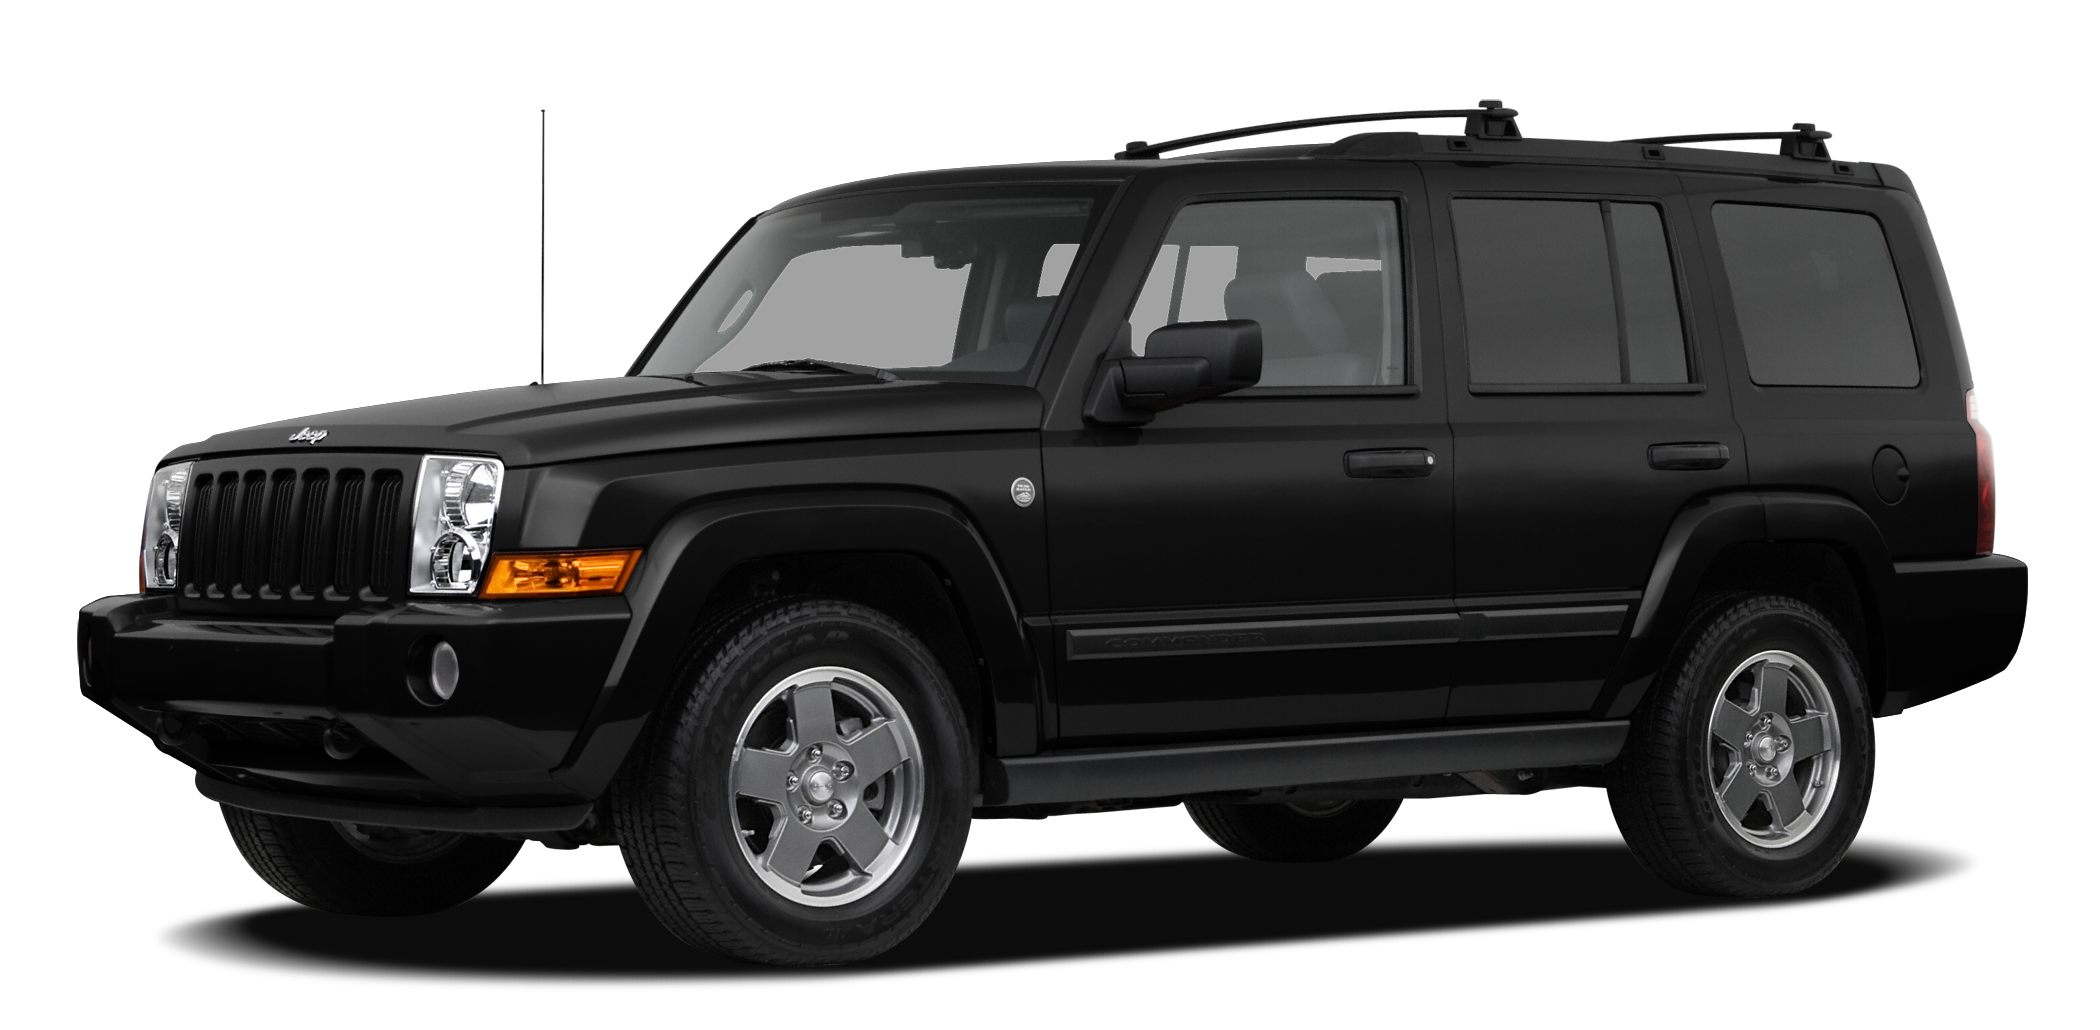 2010 Jeep Commander Limited Land a bargain on this 2010 Jeep Commander Limited before someone else